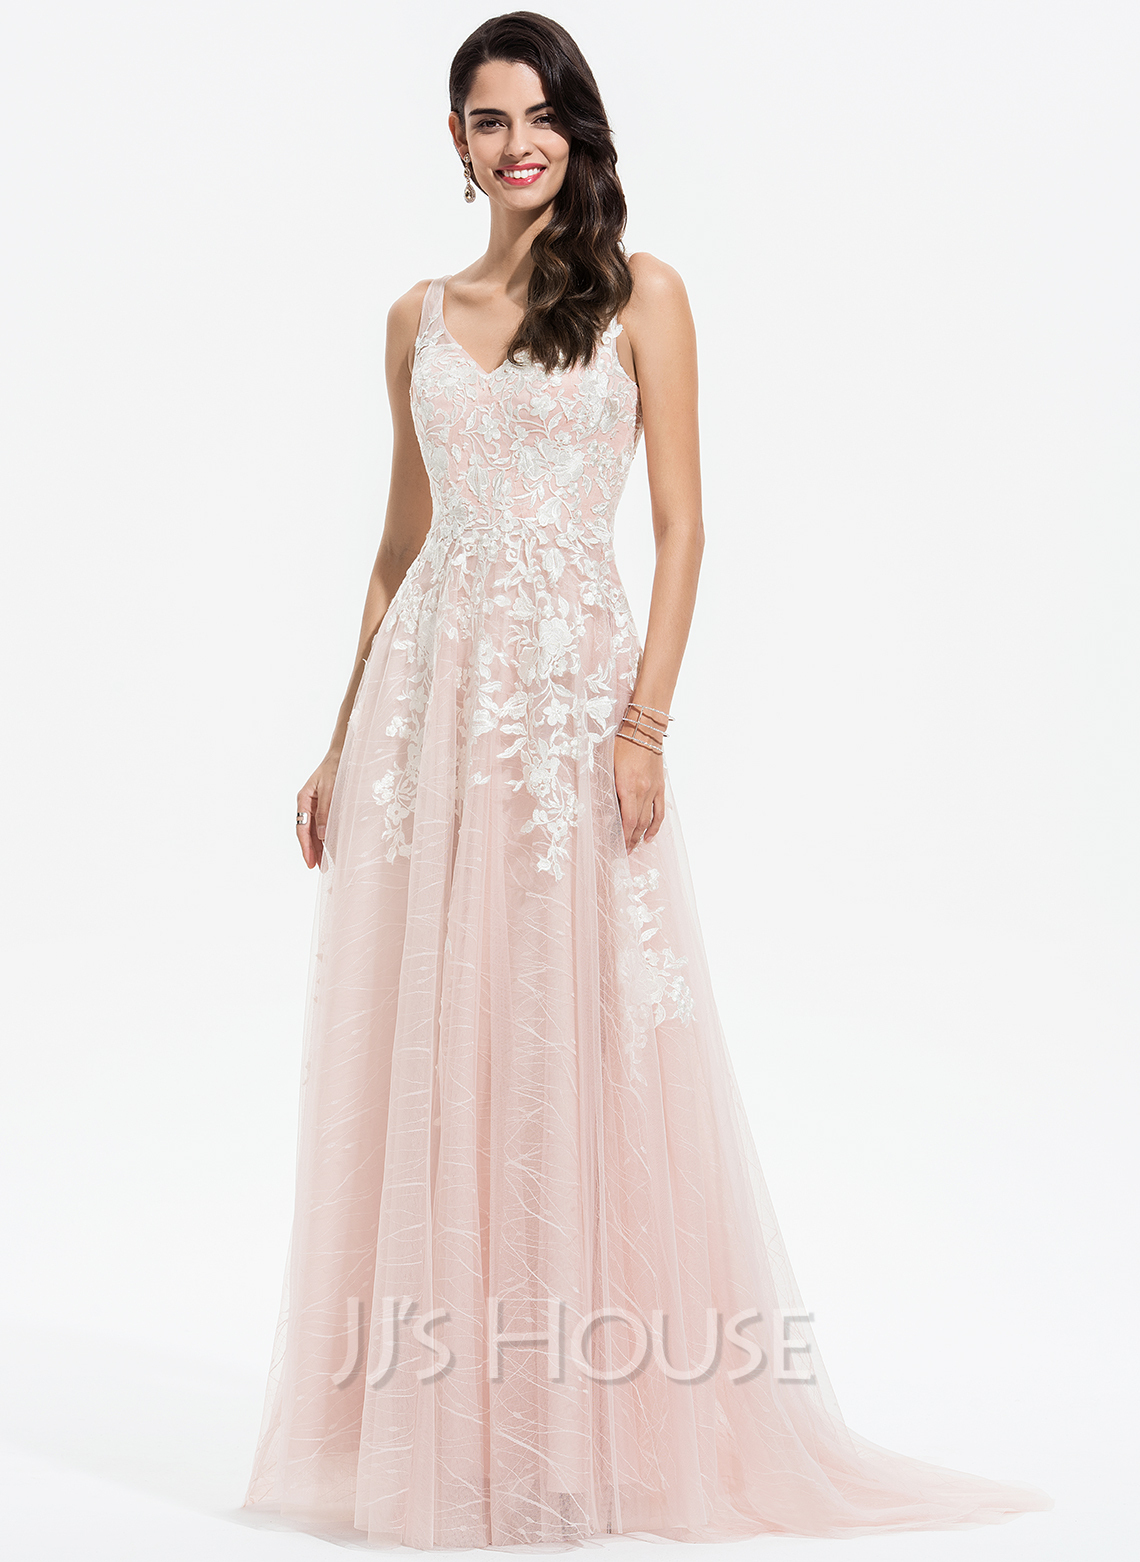 A-Line V-neck Sweep Train Tulle Wedding Dress With Lace